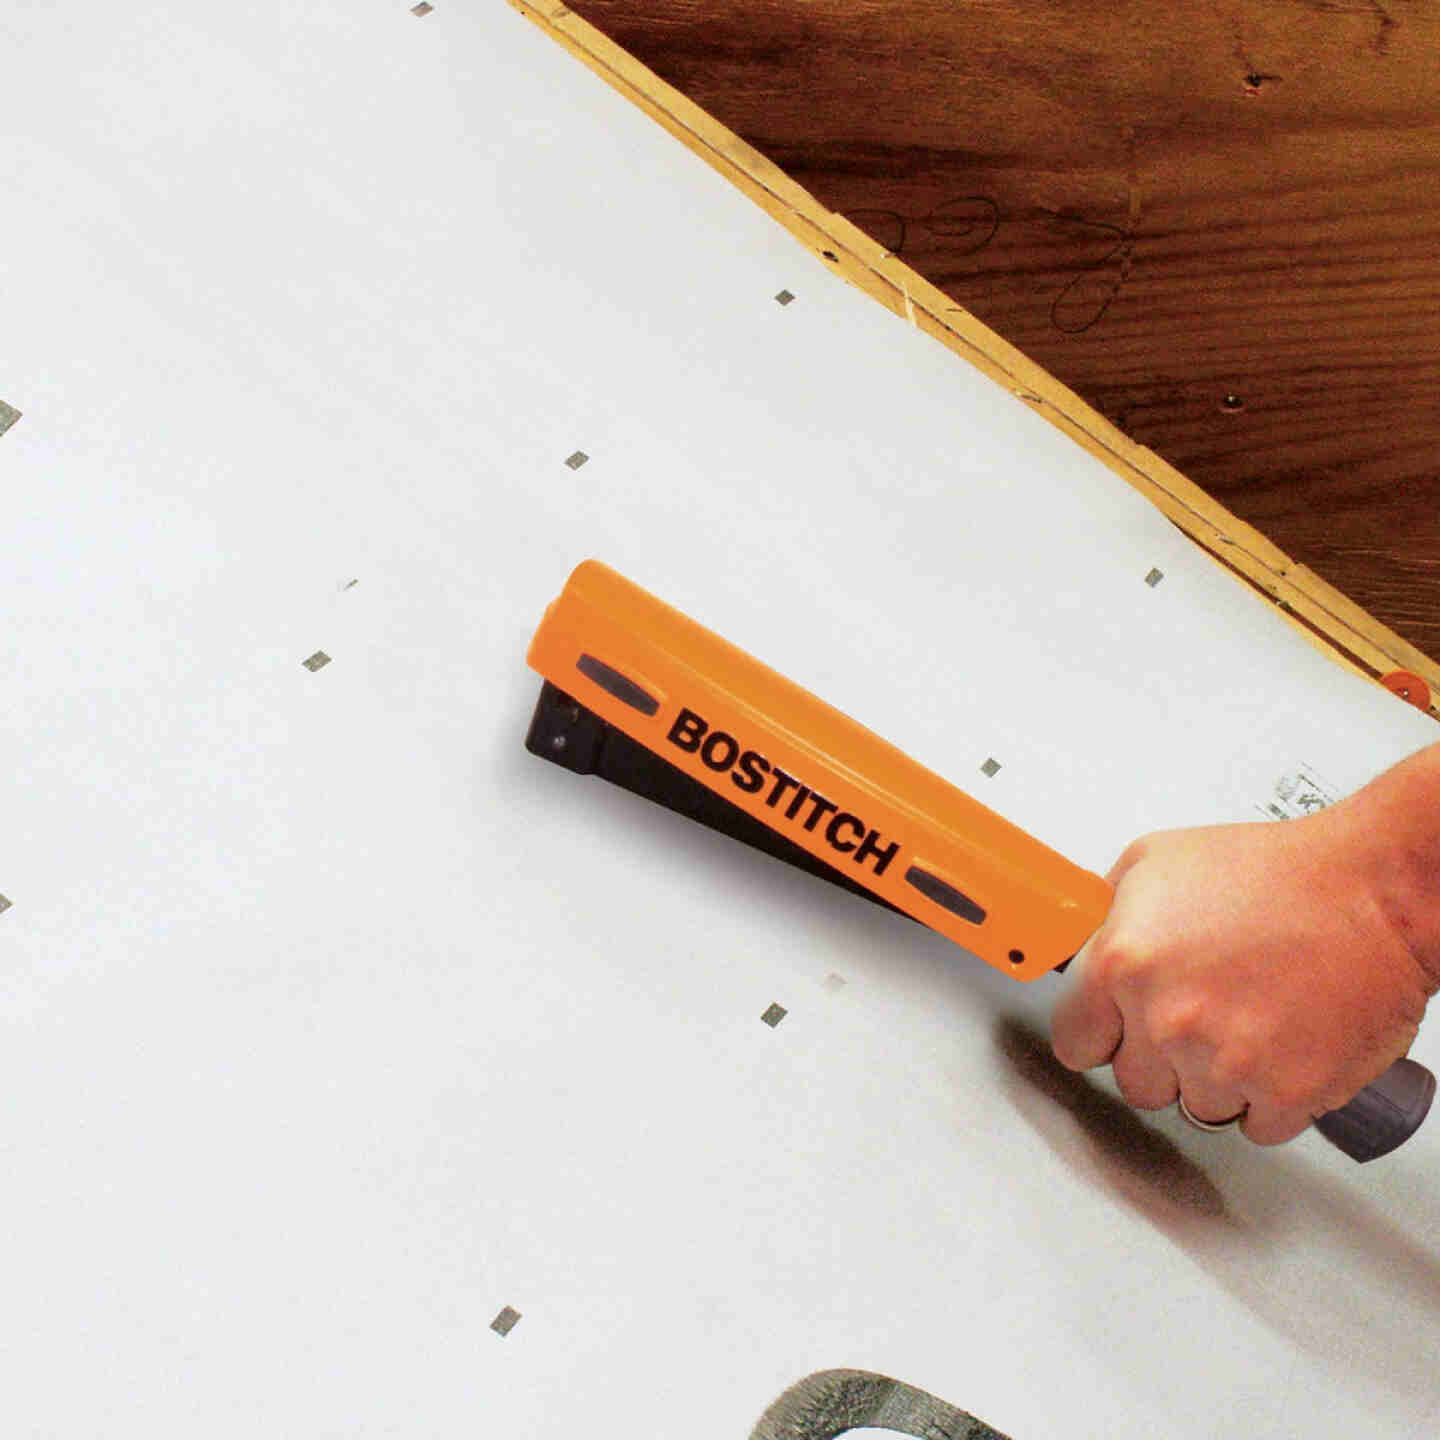 Bostitch PowerCrown Light-Duty Hammer Tacker with Holder Image 3